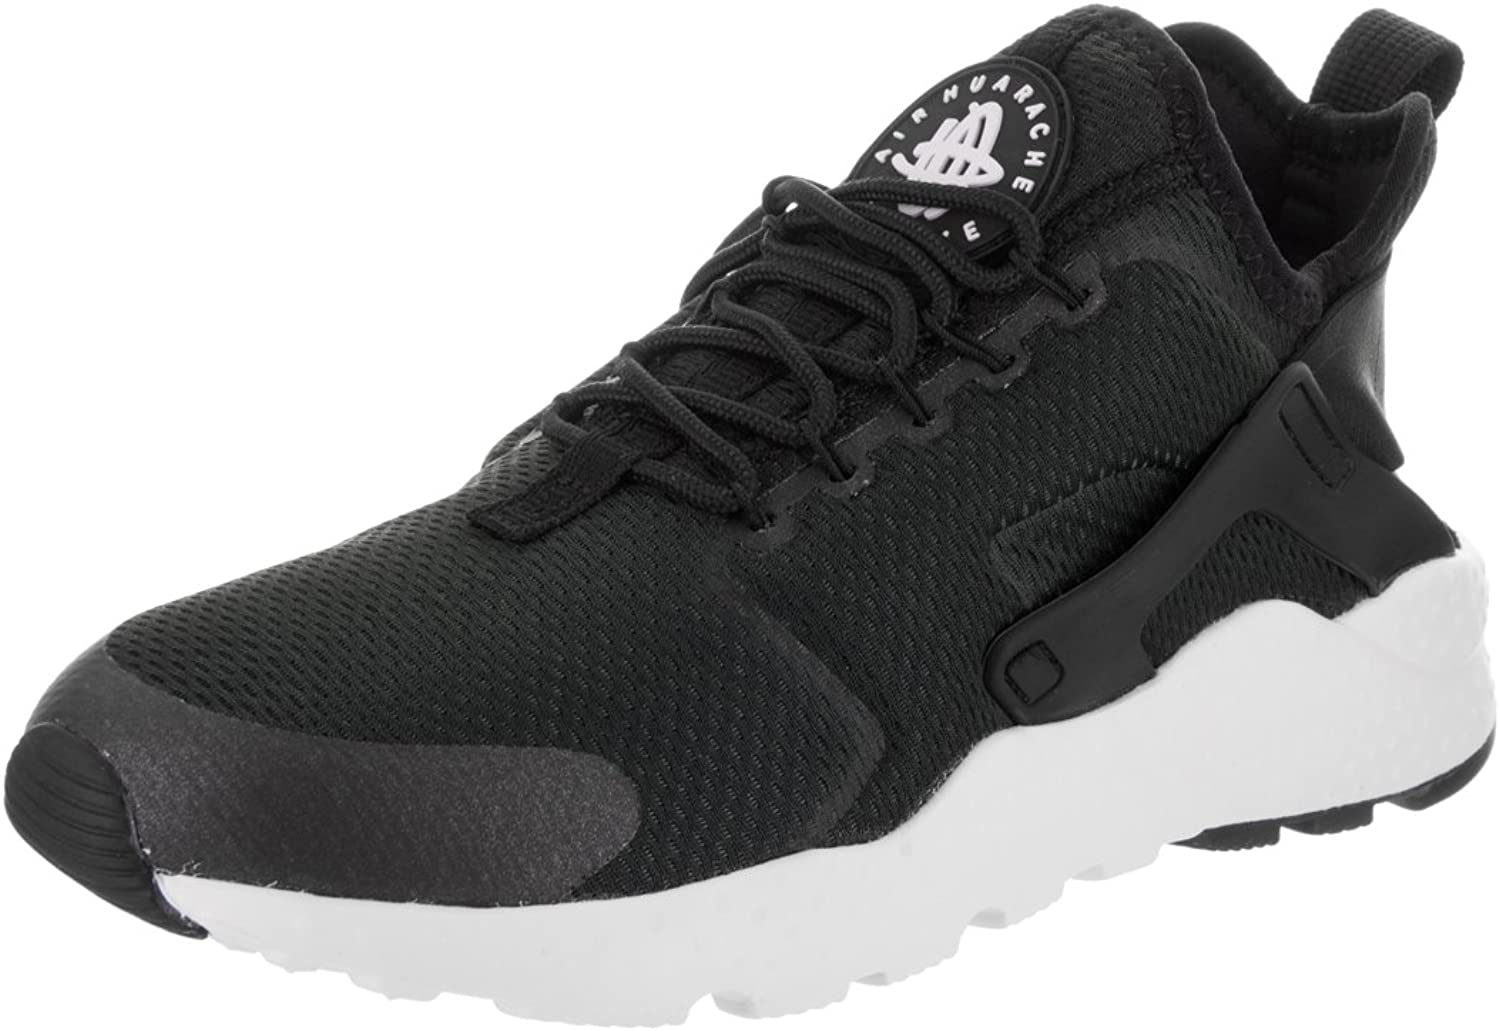 Nike Women's Air Huarache Run Ultra Low-Top Sneakers Black